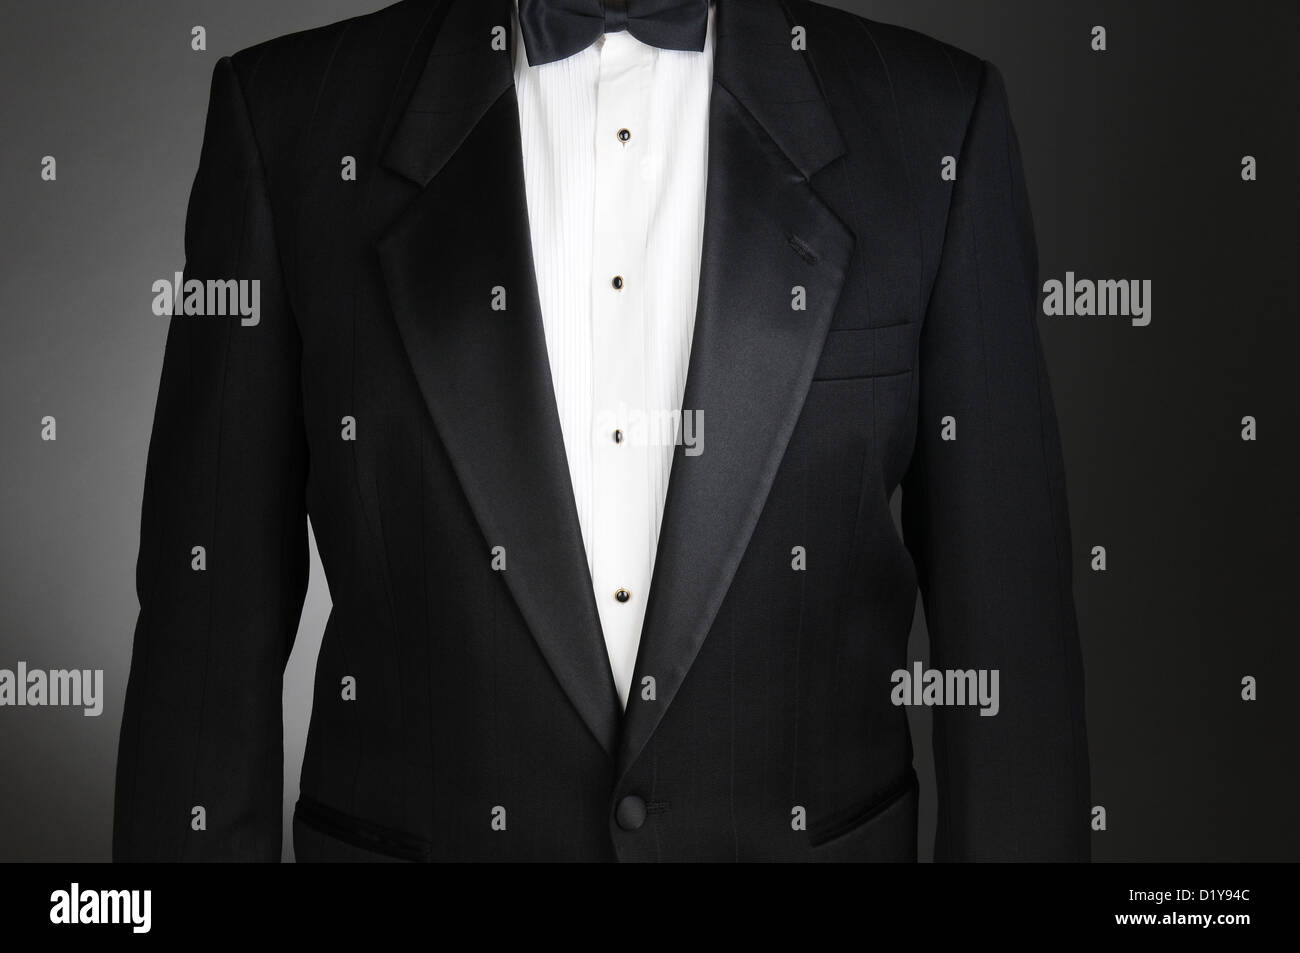 Closeup of a Black Tuxedo Jacket. Torso only on a light to dark gray background. Horizontal format. - Stock Image